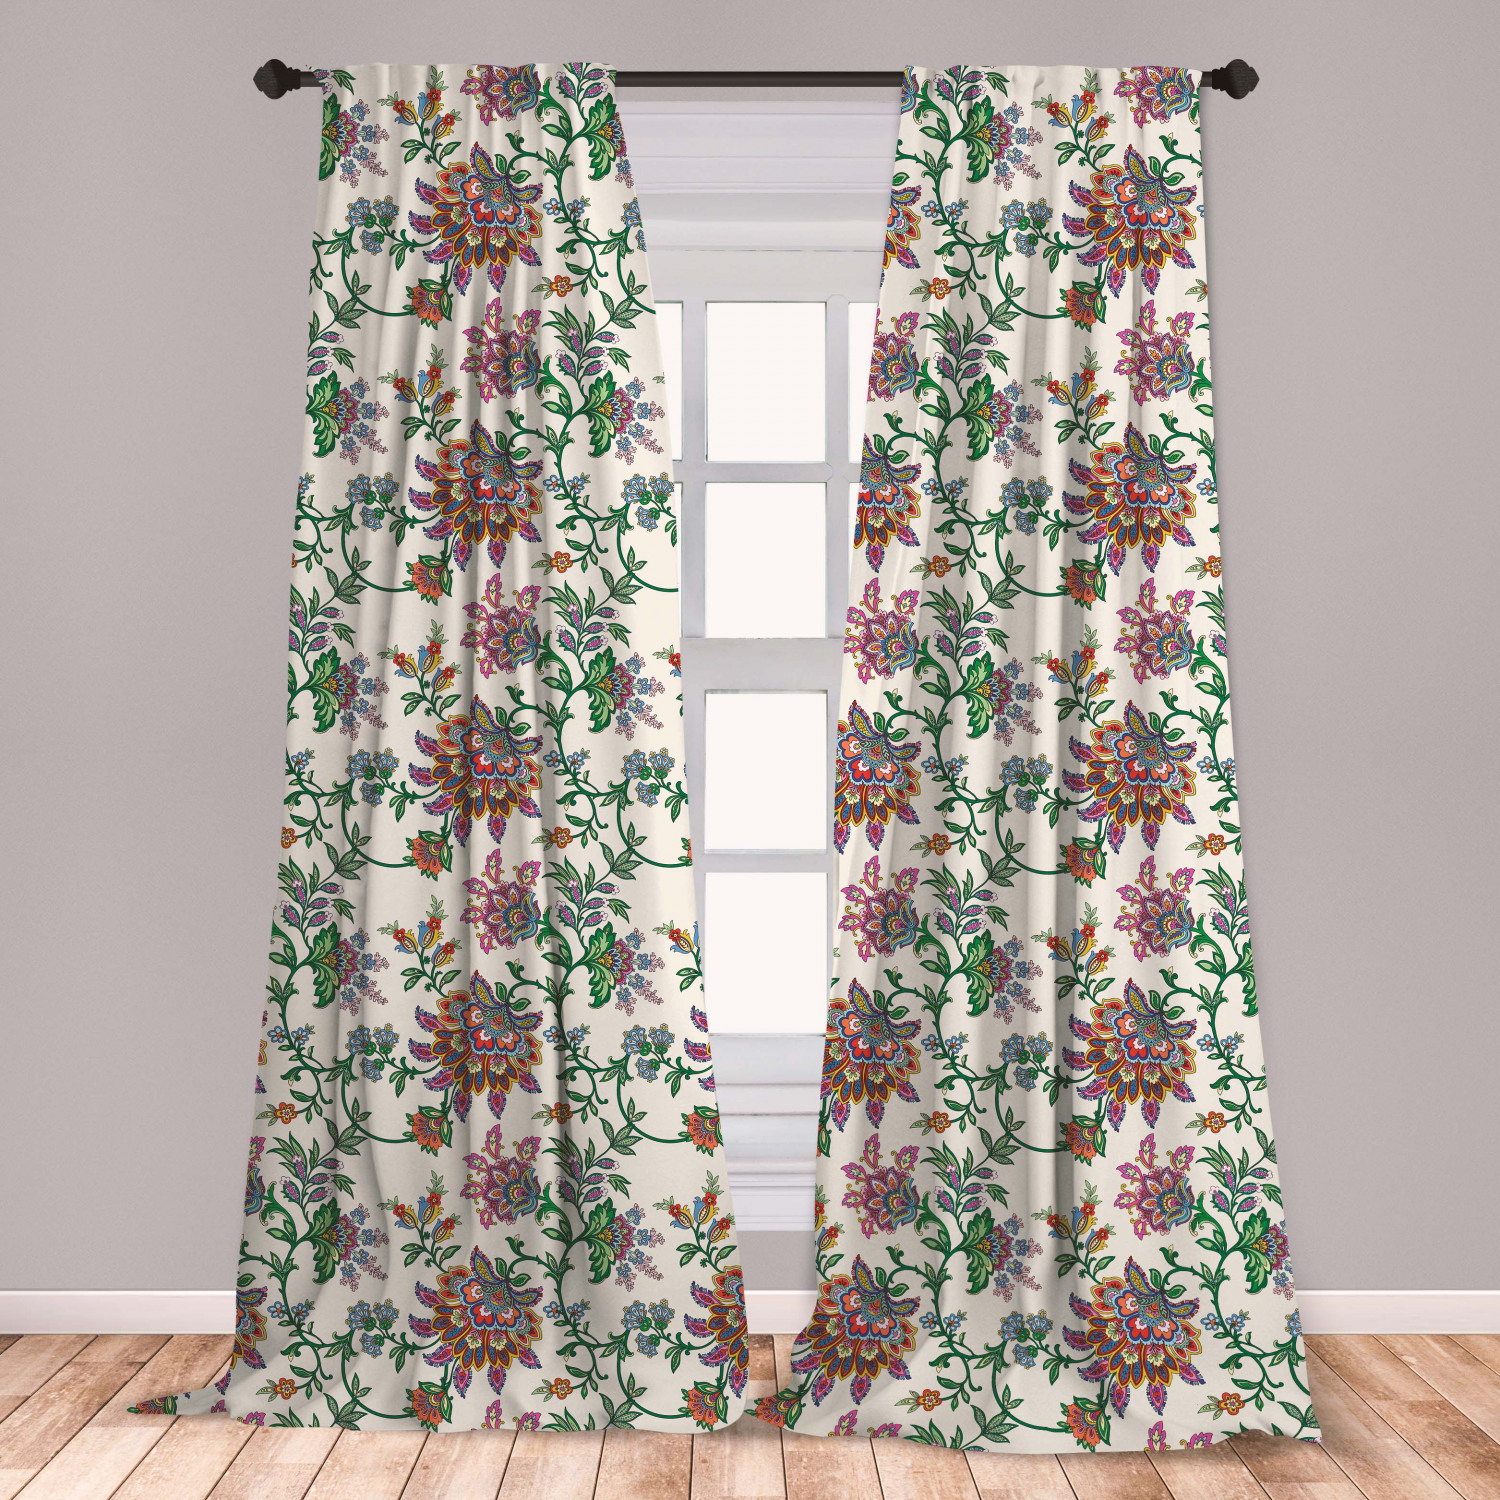 ColorBird Geometric Semi-Blackout Window Curtains 2 Panels Bohemian Style Cotton Linen Curtains with Pom Pom Rod Pocket Window Drapes for Dining Living Room Bedroom 52 W x 63 L, Geometric